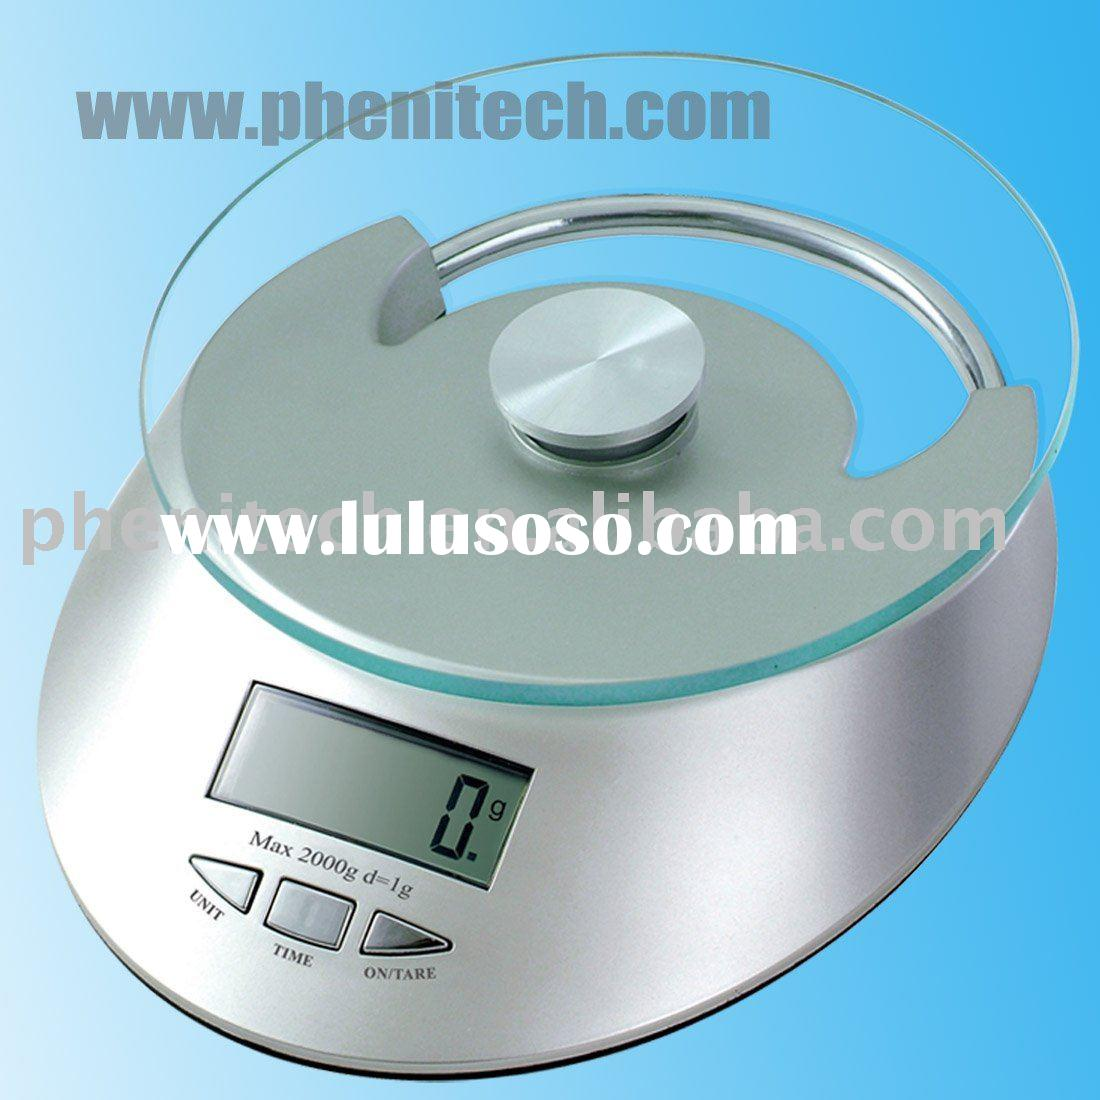 Digital Kitchen Scale/electronic foot fruit scale KS-801